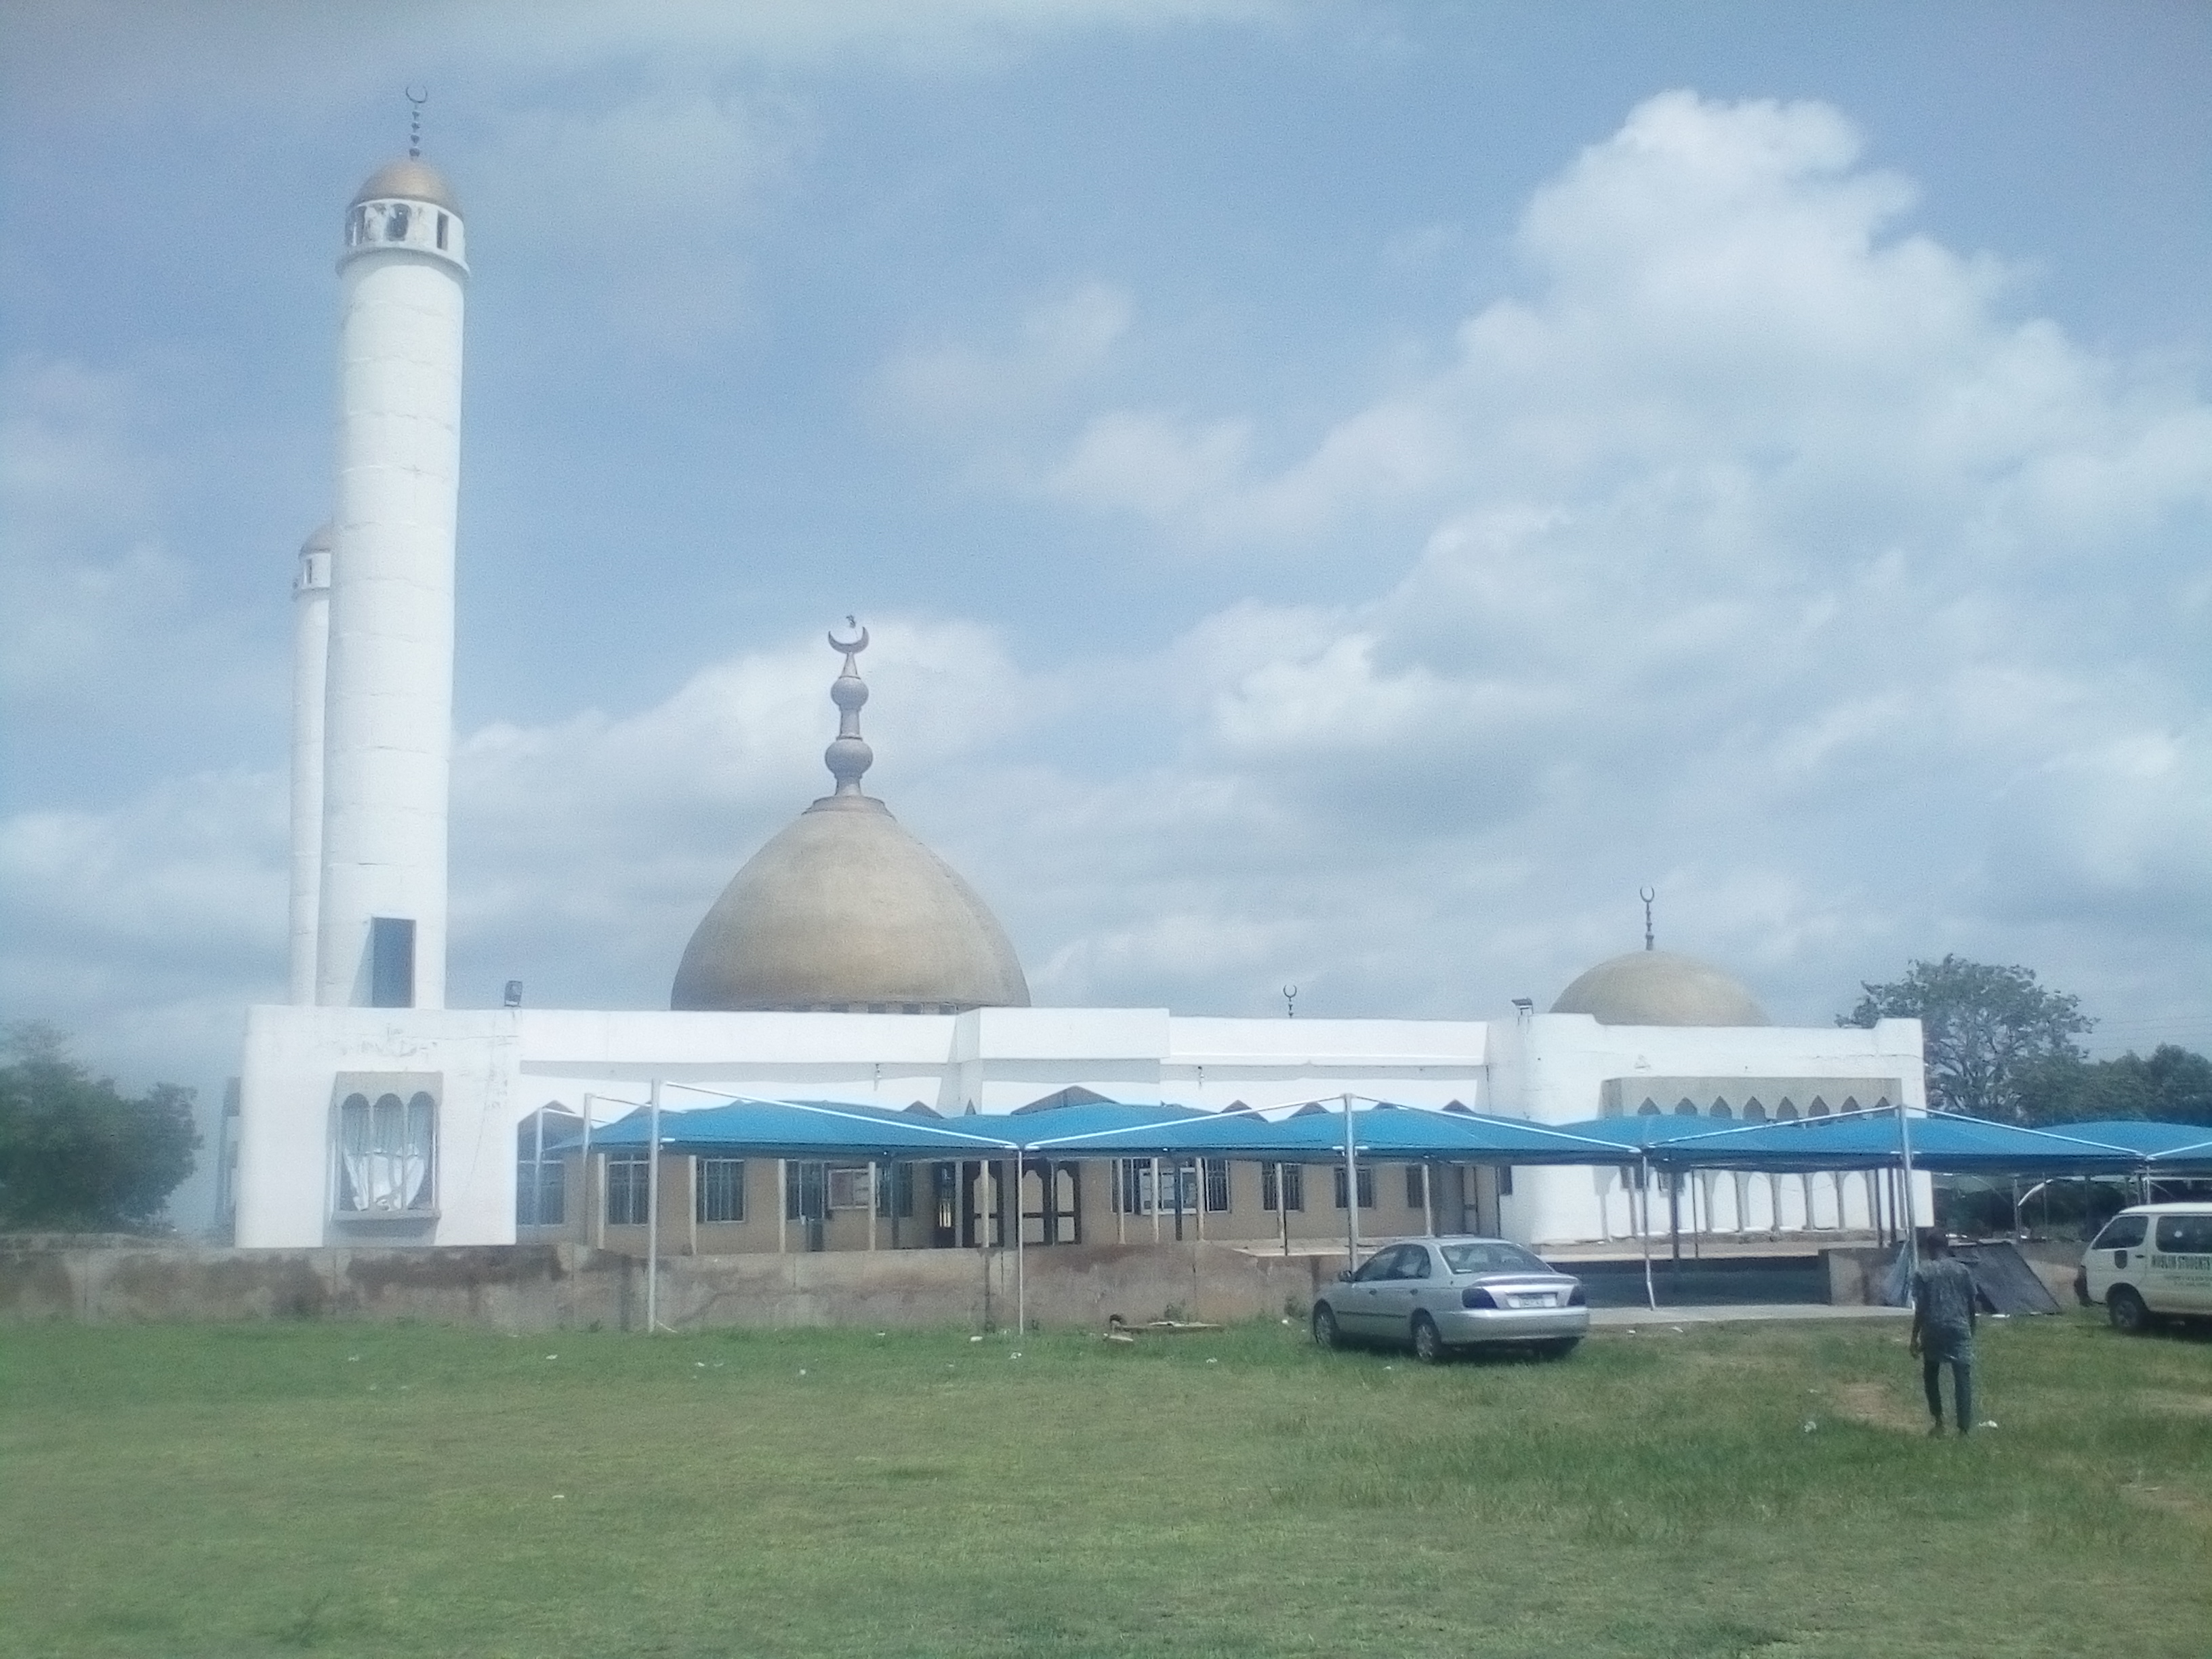 unilorin mosque during valentine's day